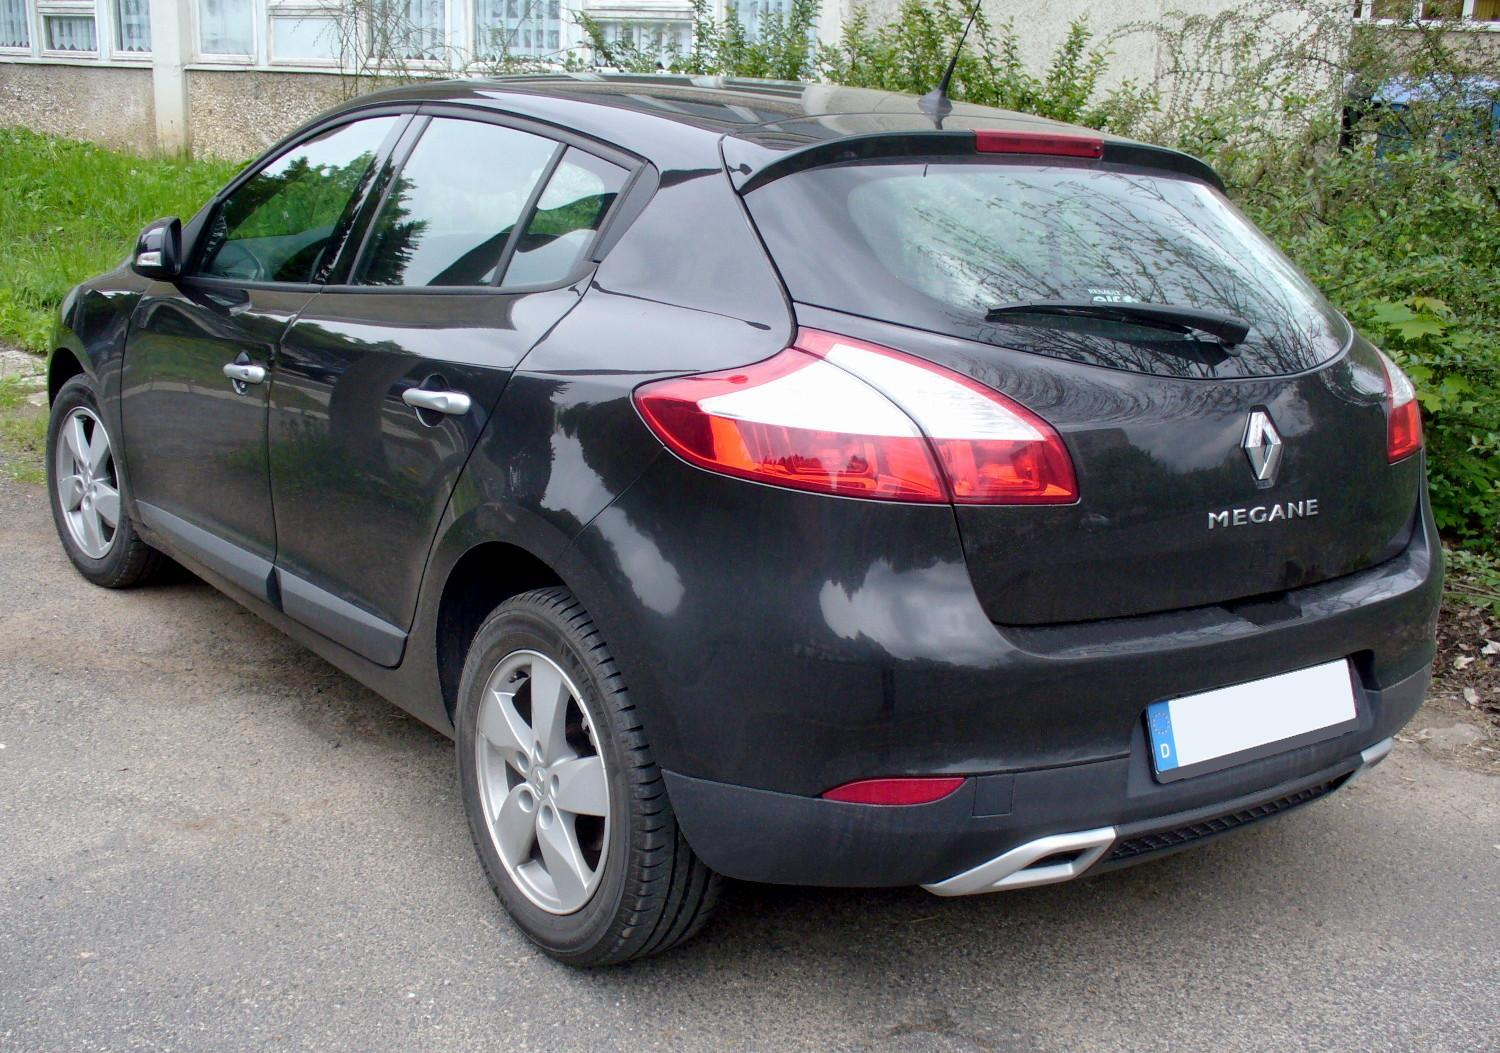 2009 renault megane iii pictures information and specs auto. Black Bedroom Furniture Sets. Home Design Ideas